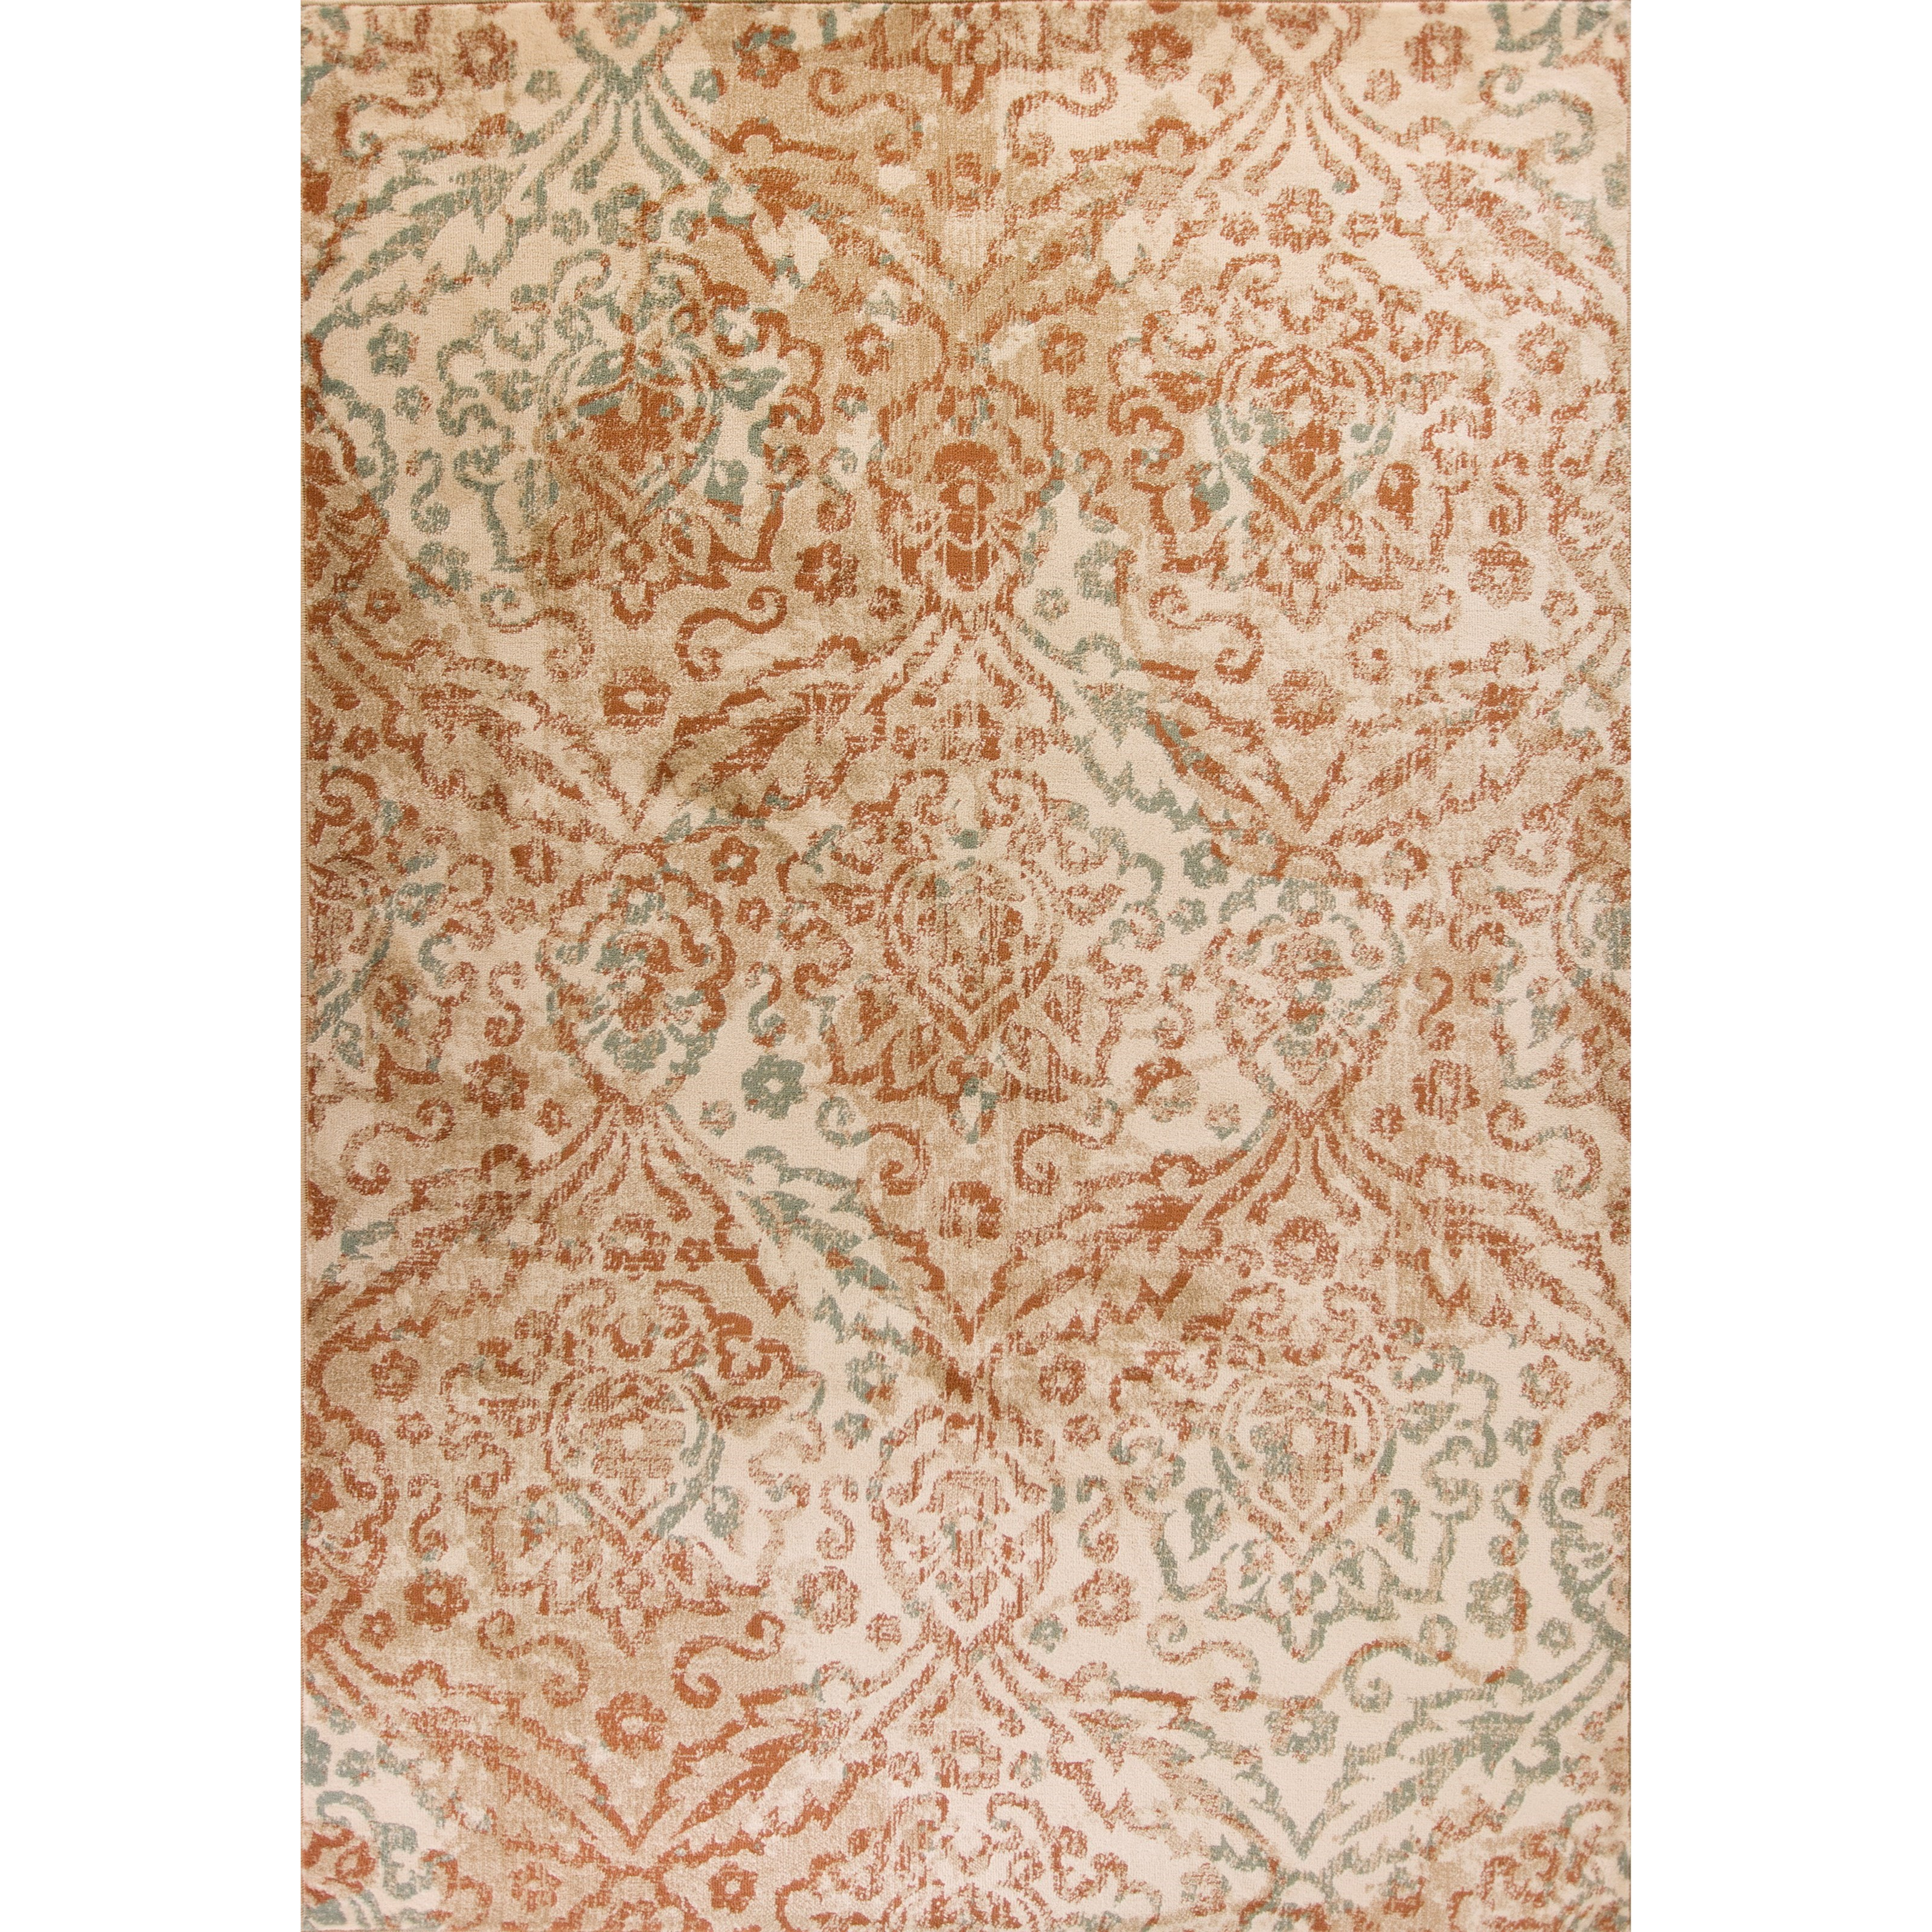 """Heritage 3'3"""" X 4'11"""" Sand Traditions Area Rug by Kas at Zak's Home"""